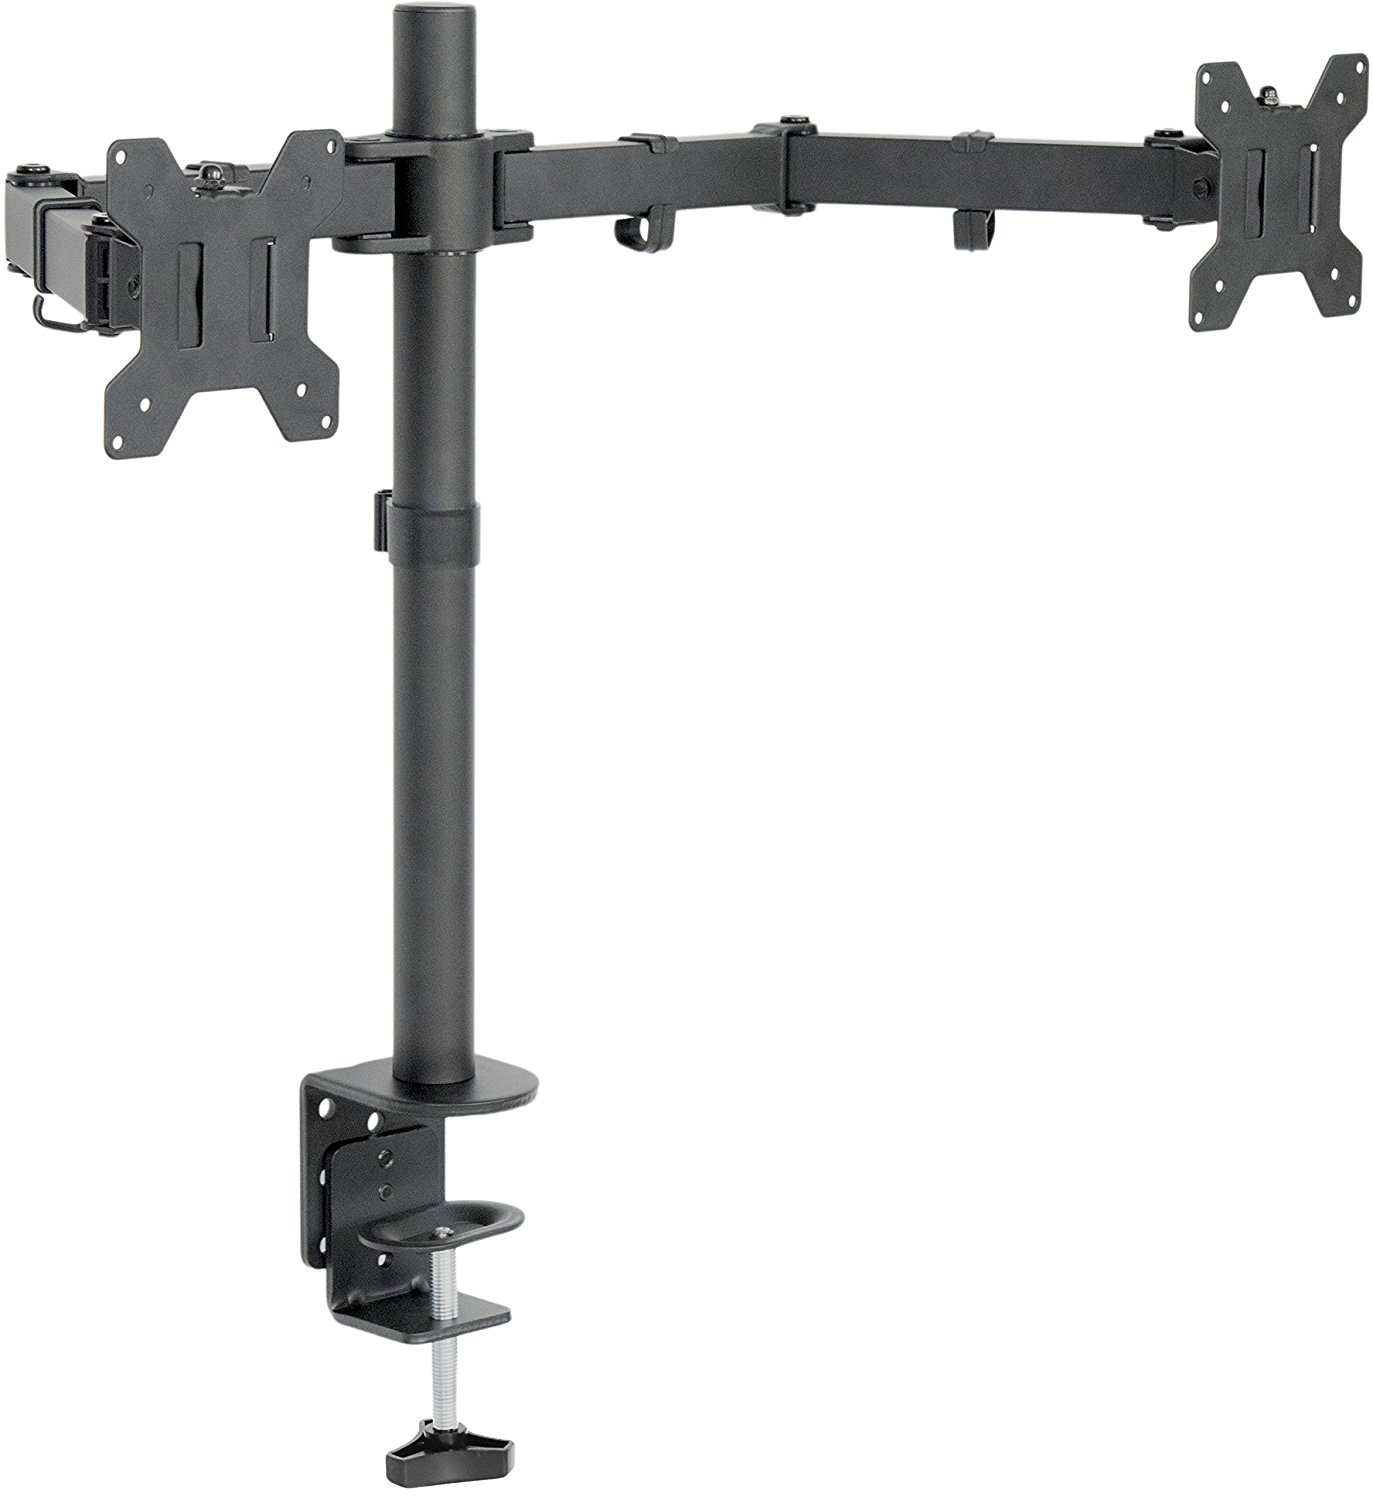 2 Monitor Desk Mount on Amazon